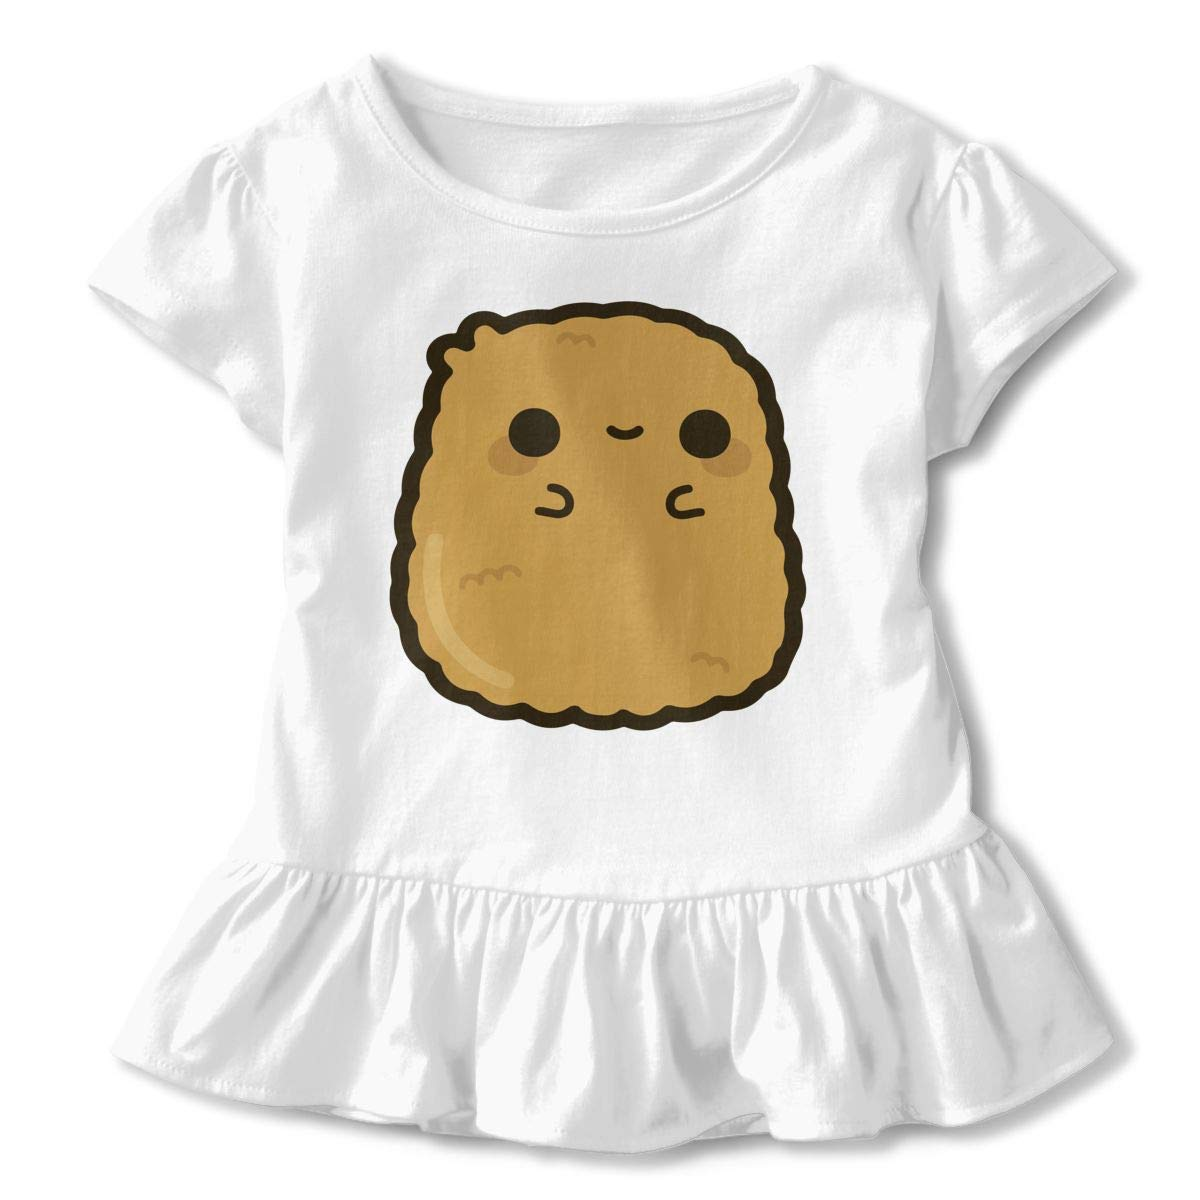 HYBDX9T Little Girls Cute Chicken Nugget Funny Short Sleeve Cotton T Shirts Basic Tops Tee Clothes